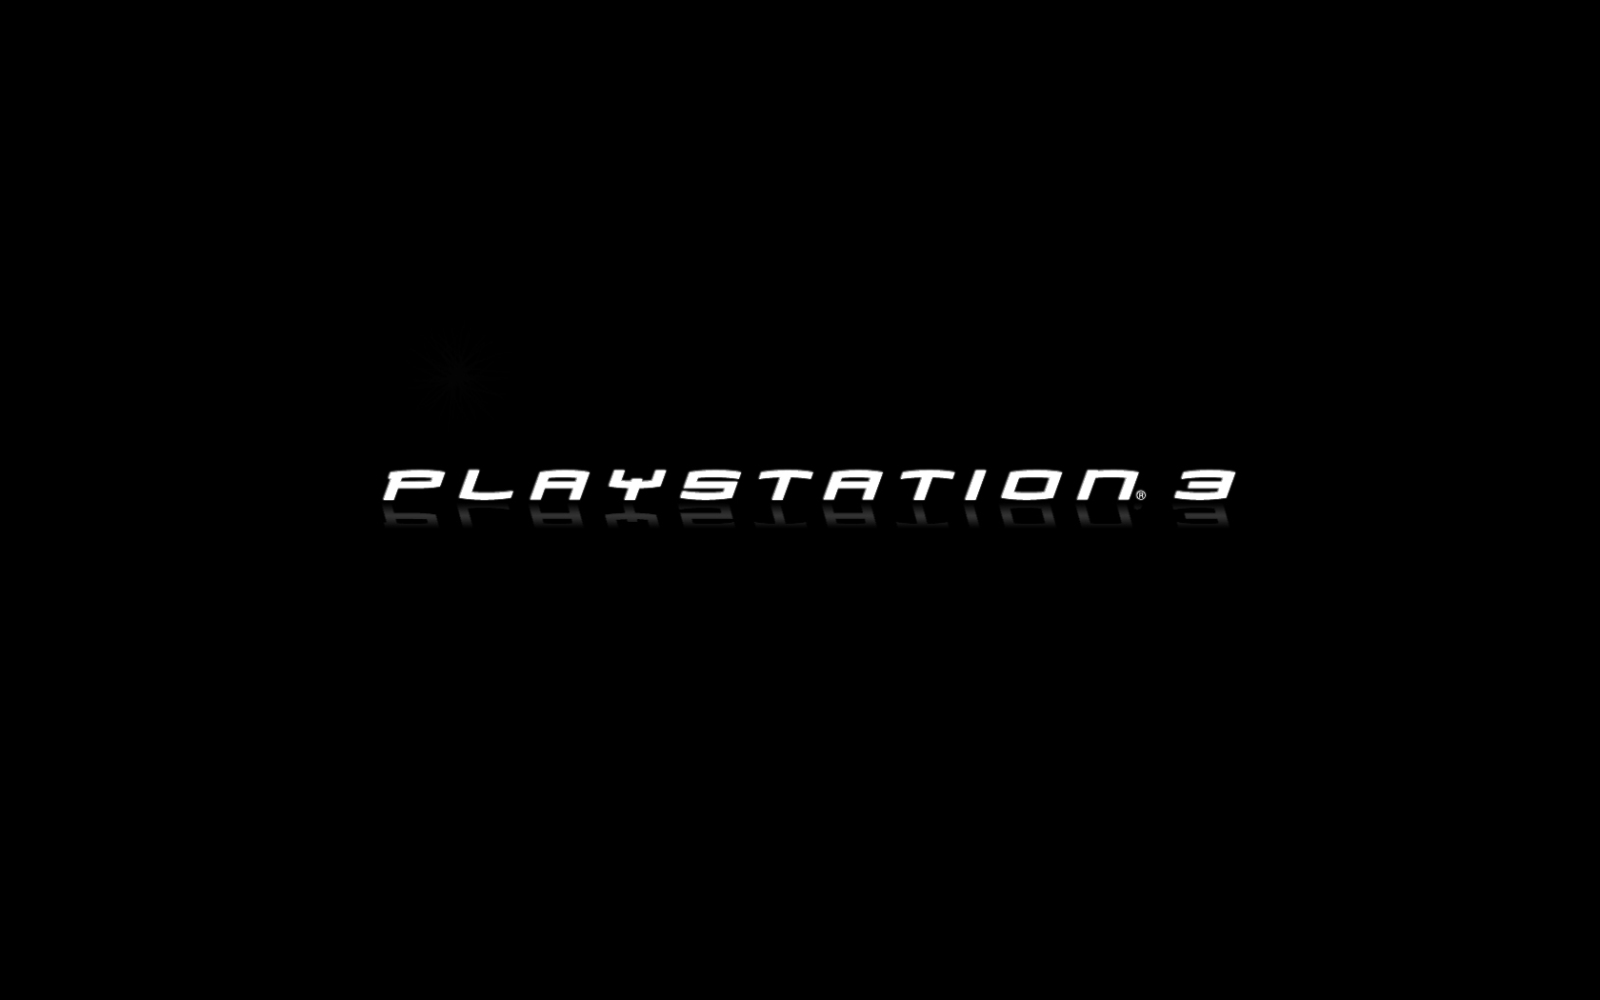 playstation 3 images ps3 hd wallpaper and background photos (24746762)